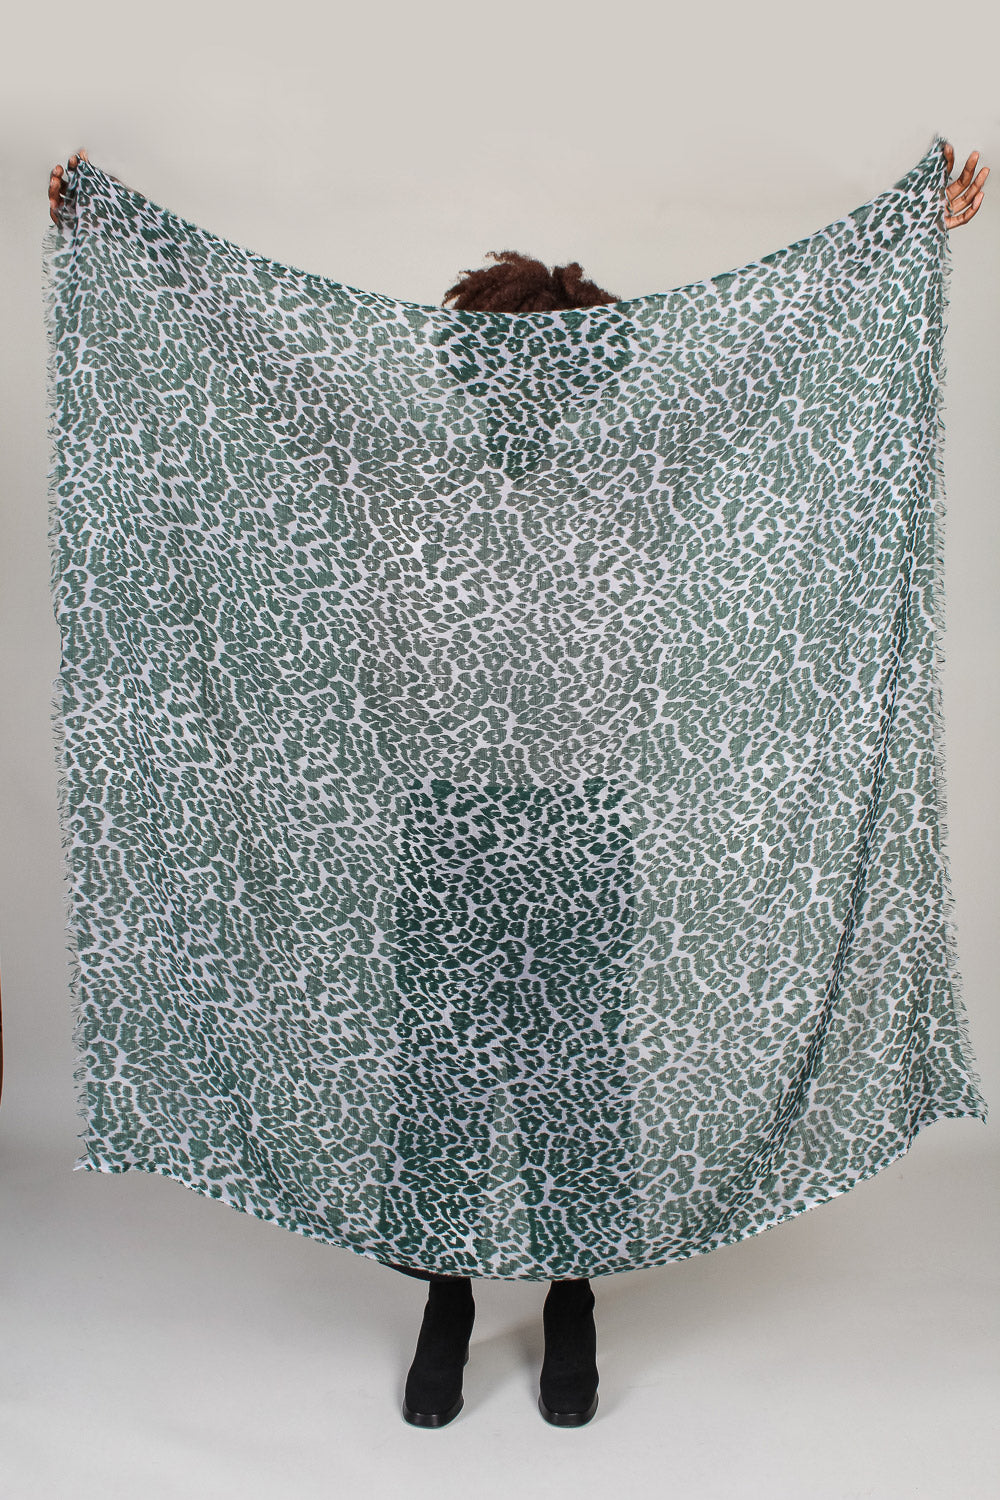 Janel Paws Scarf in Green